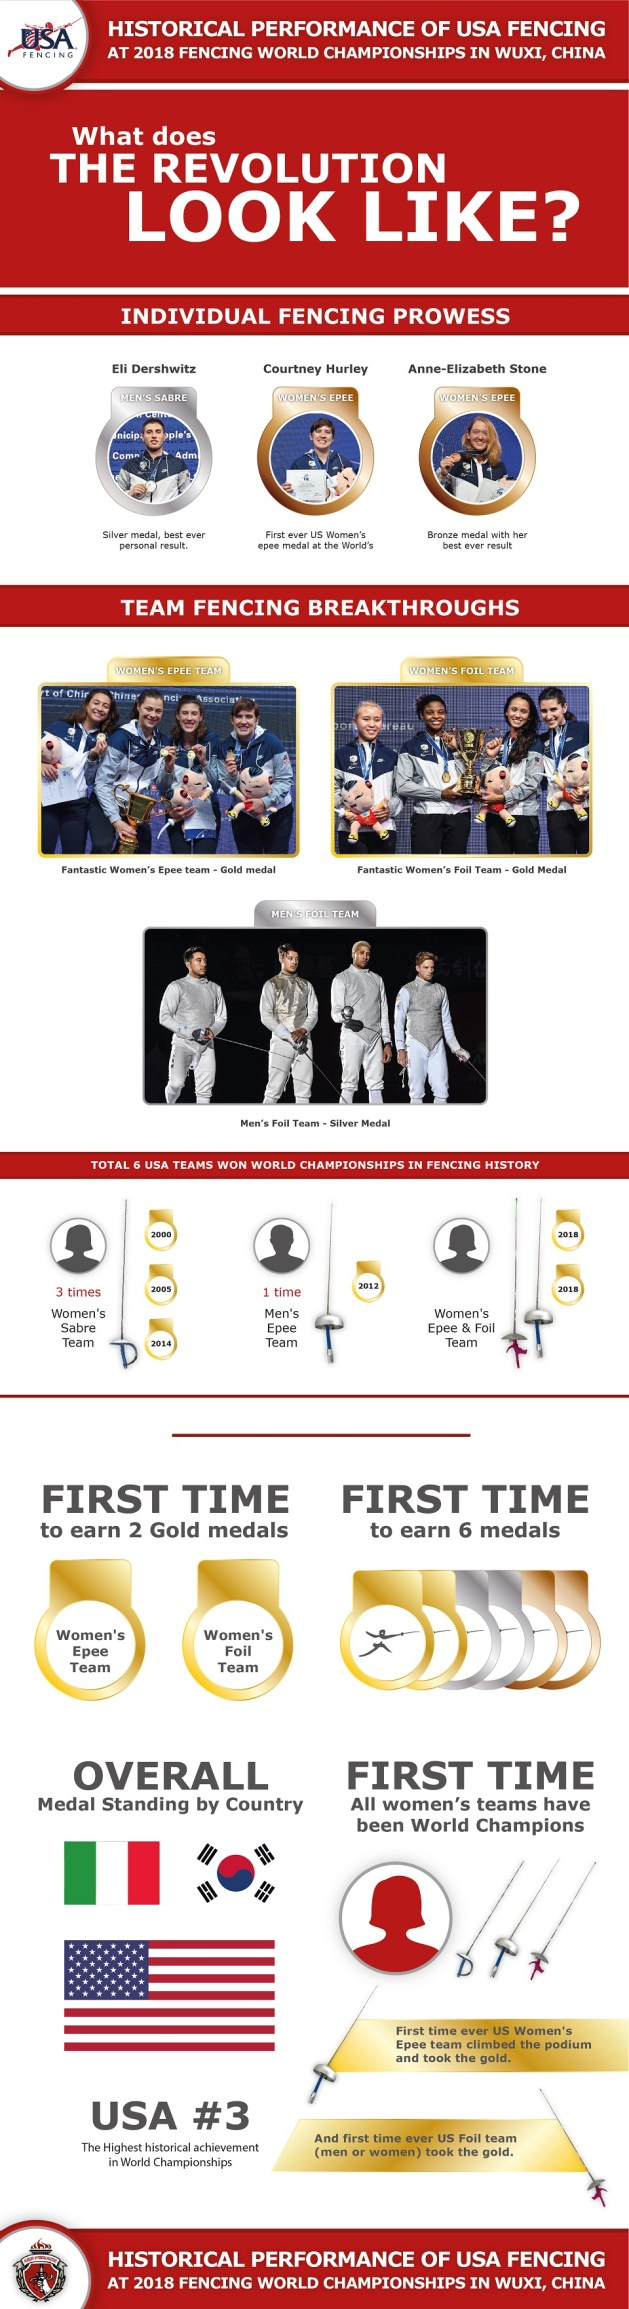 Infographic - Historic Performance of USA Fencing at 2018 Fencing World Championships in Wuxi, China - Screen Resolution